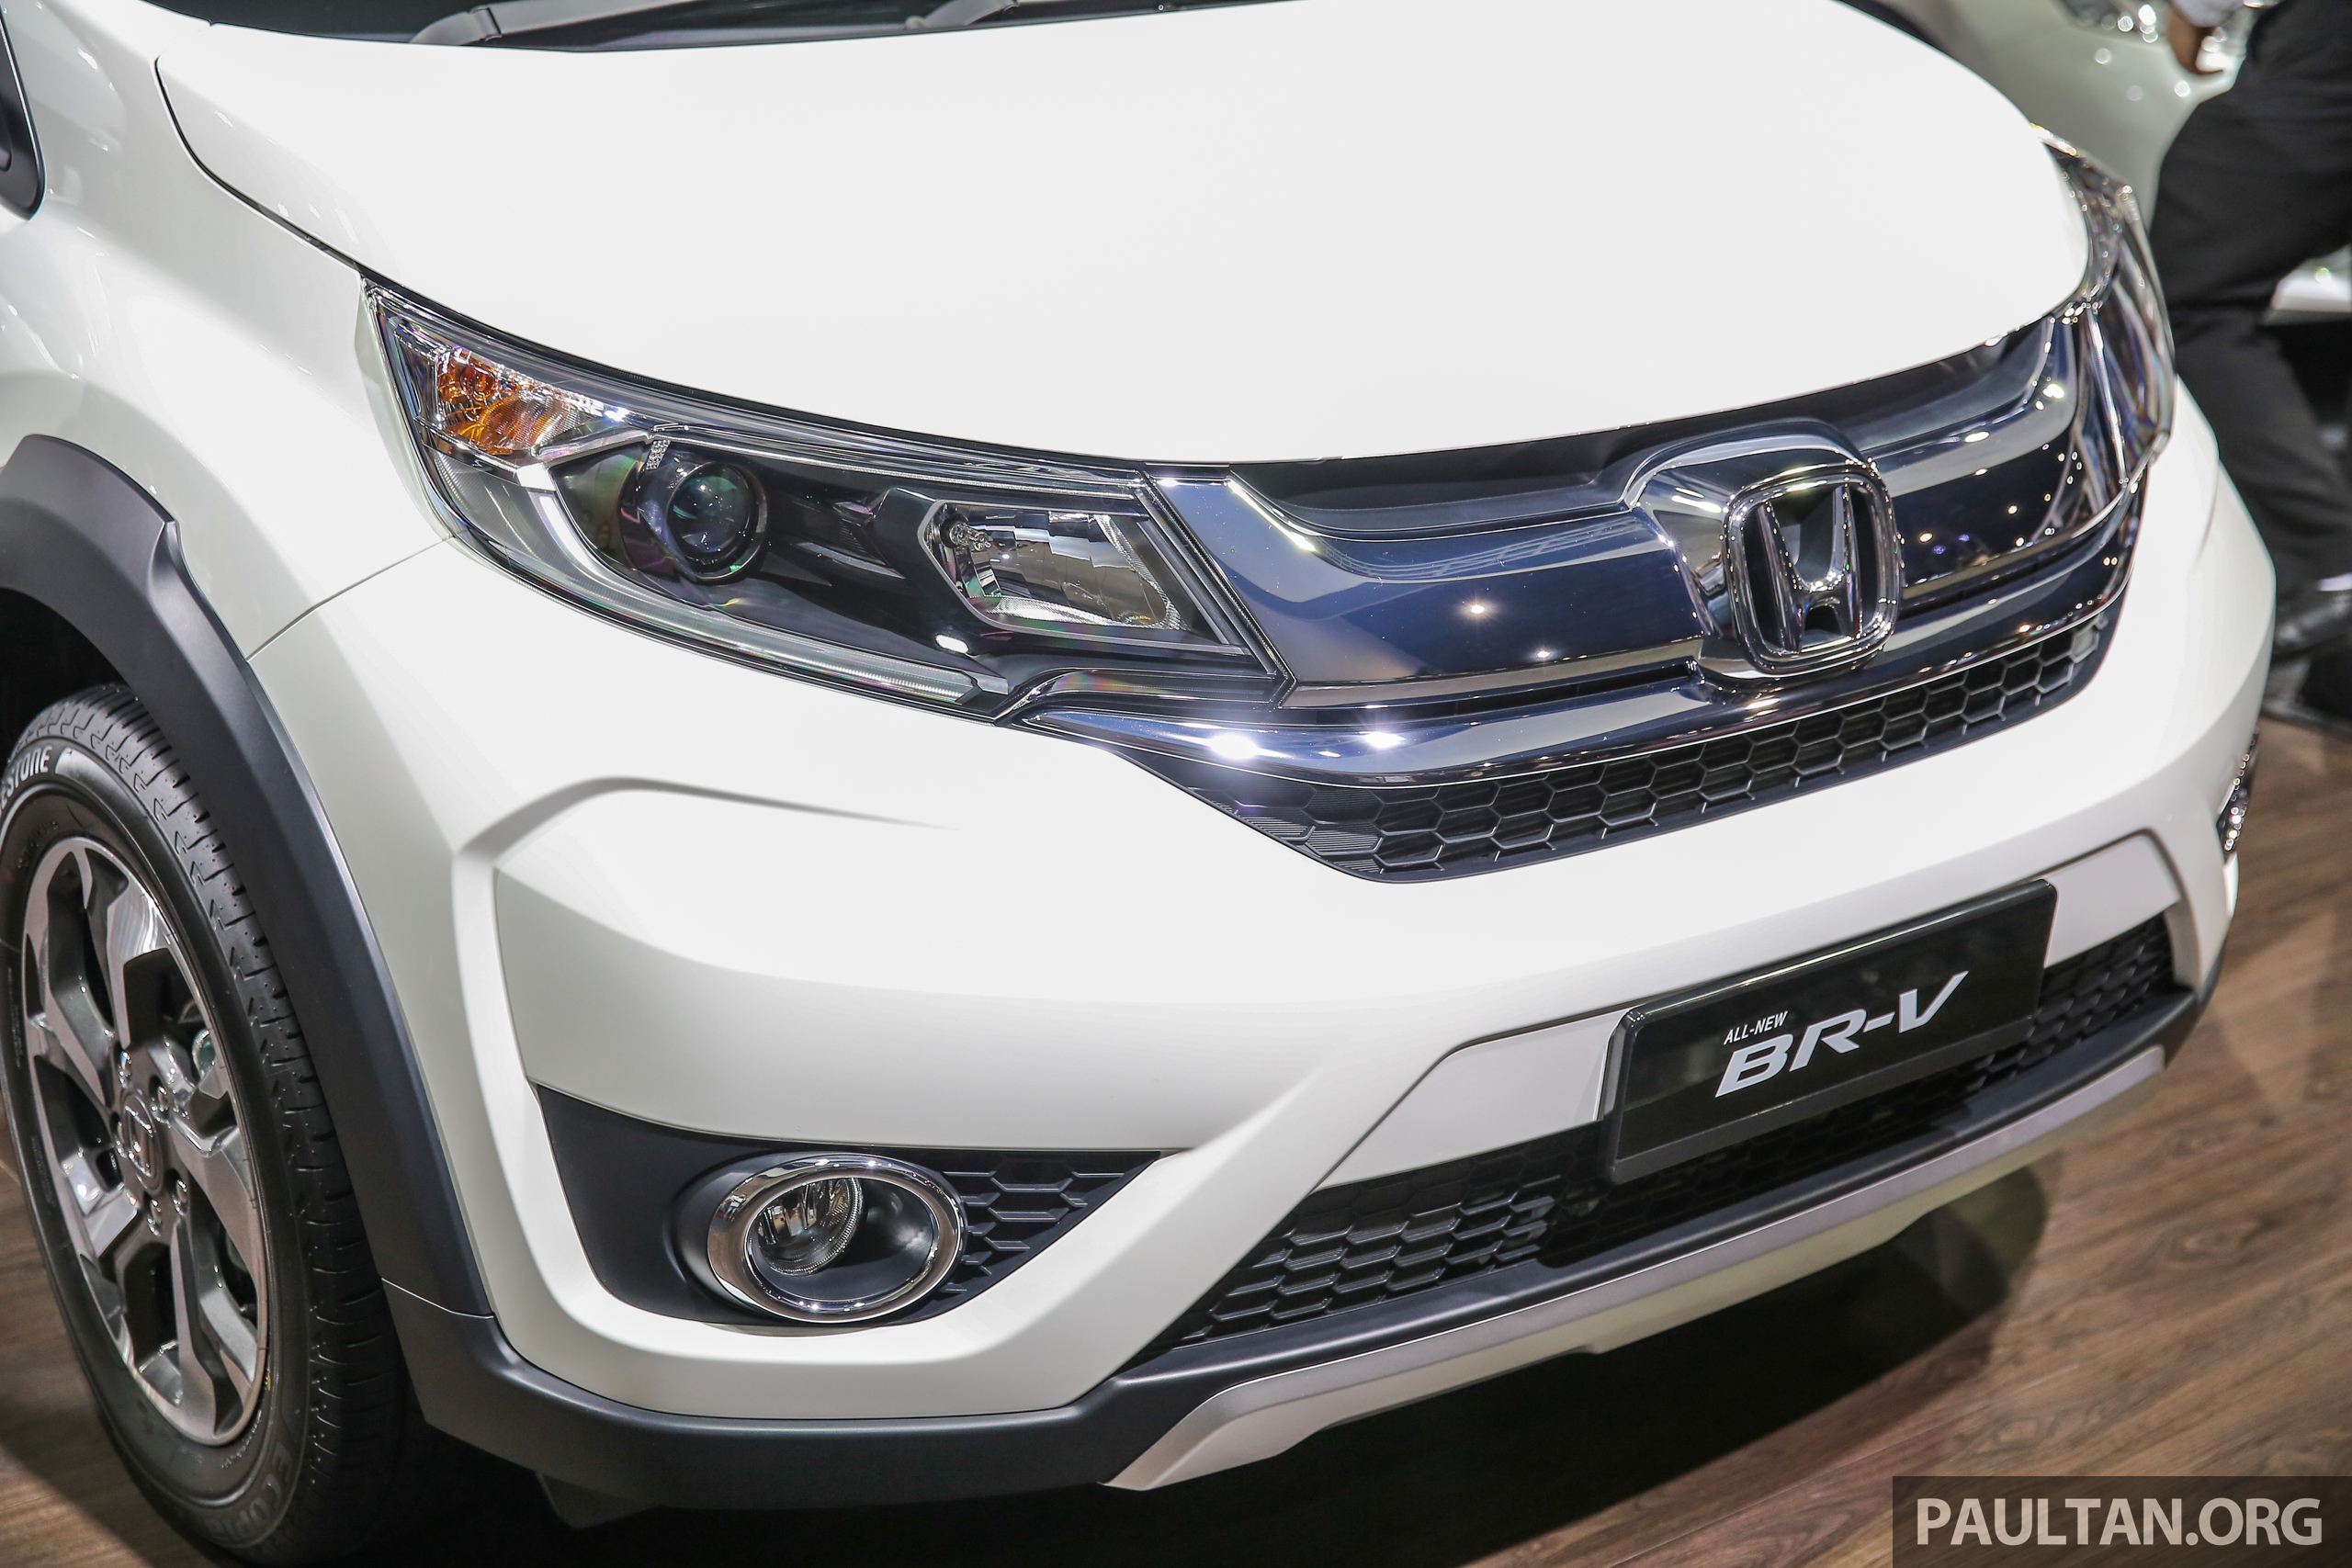 Back to Story: Honda BR-V seven-seater SUV previewed in Malaysia